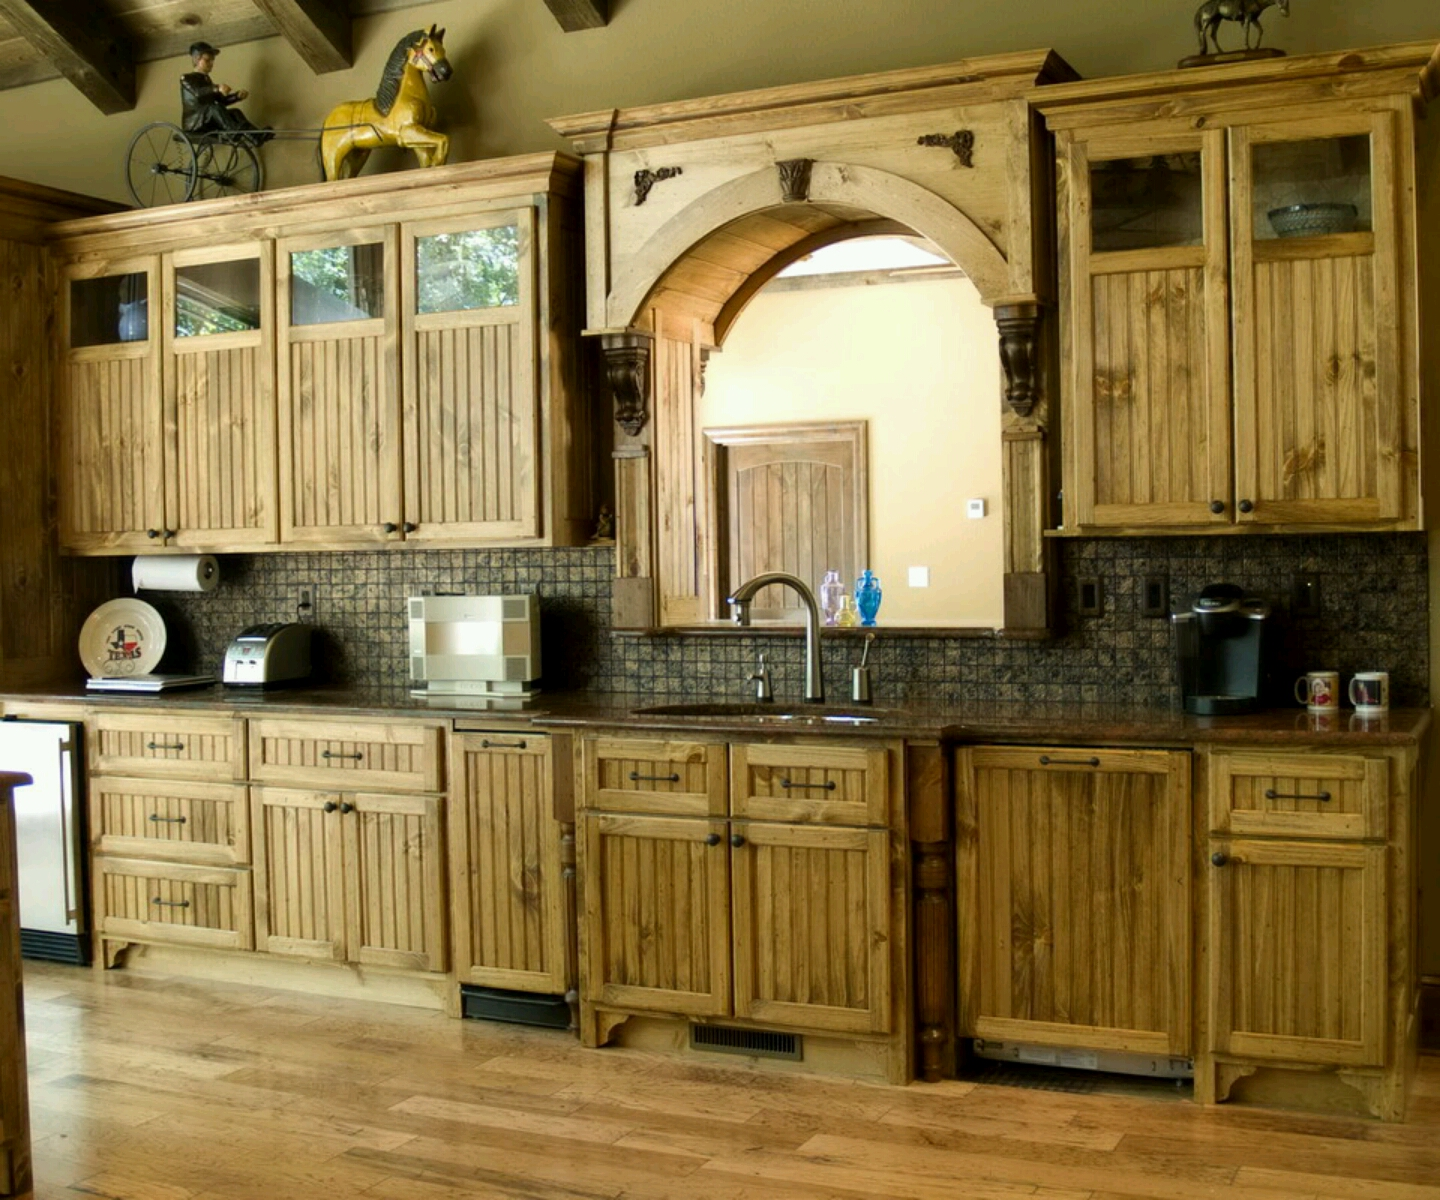 Modern wooden kitchen cabinets designs furniture gallery for Kitchen cabinets designs